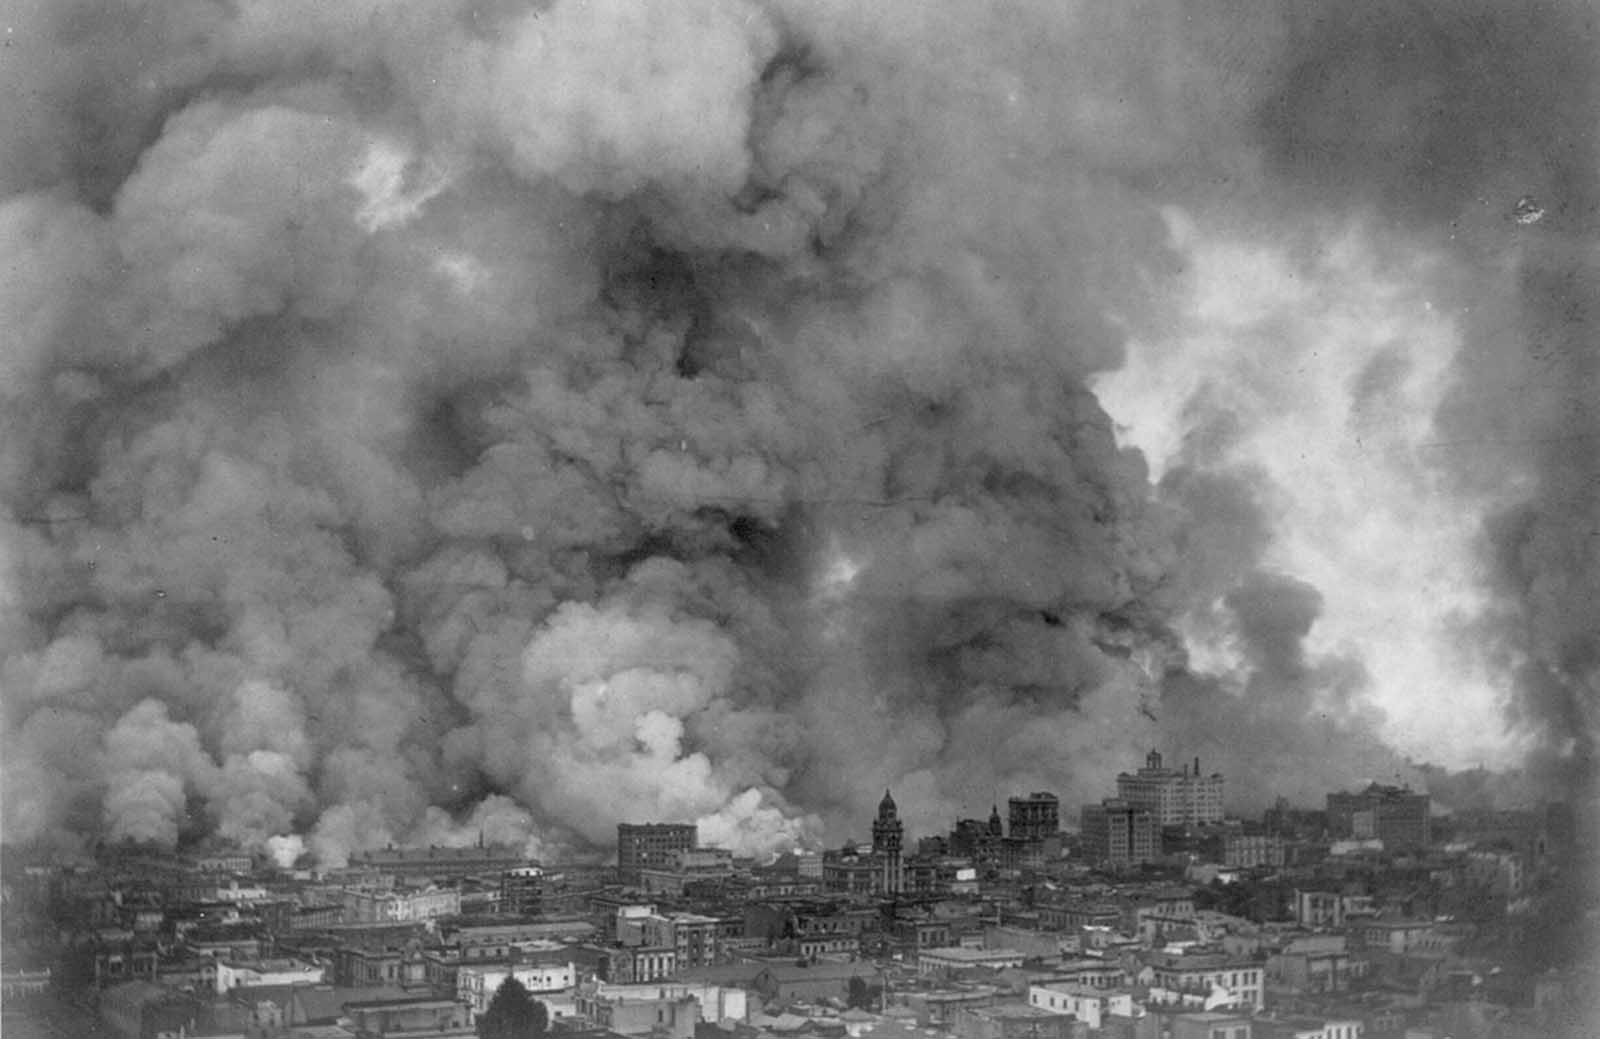 San Francisco in flames, April 18,1906.